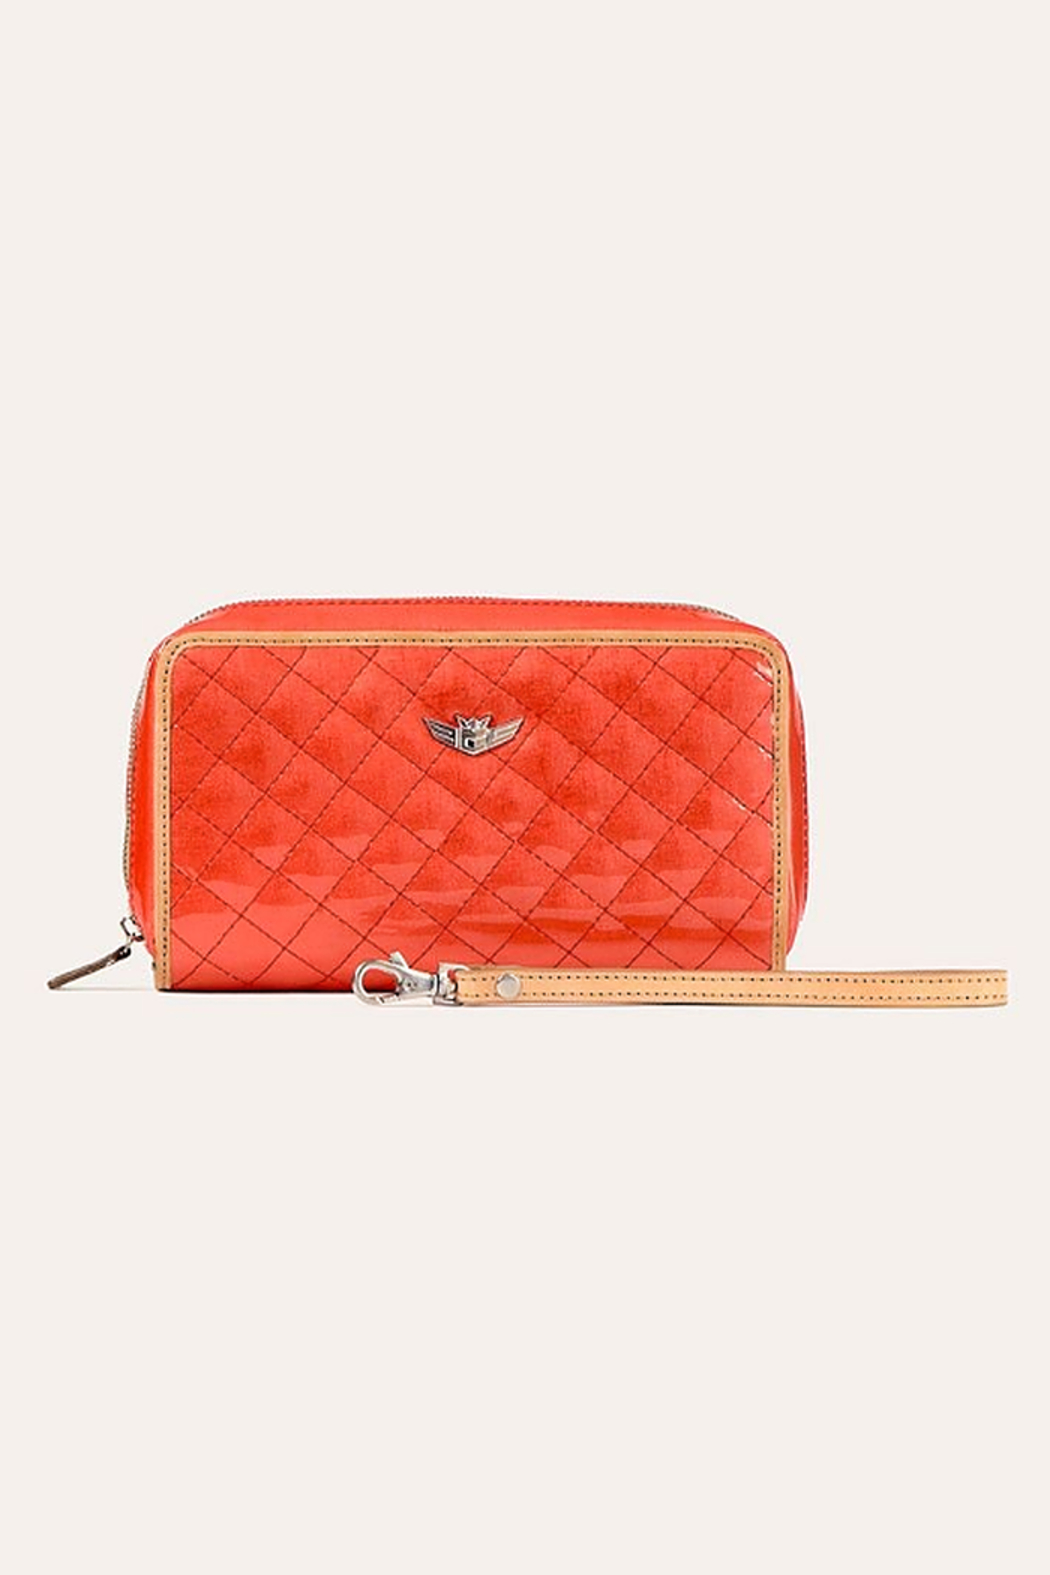 The Birds Nest CLASSIC WRISTLET WALLET -CANDY CAYENNE - Main Image